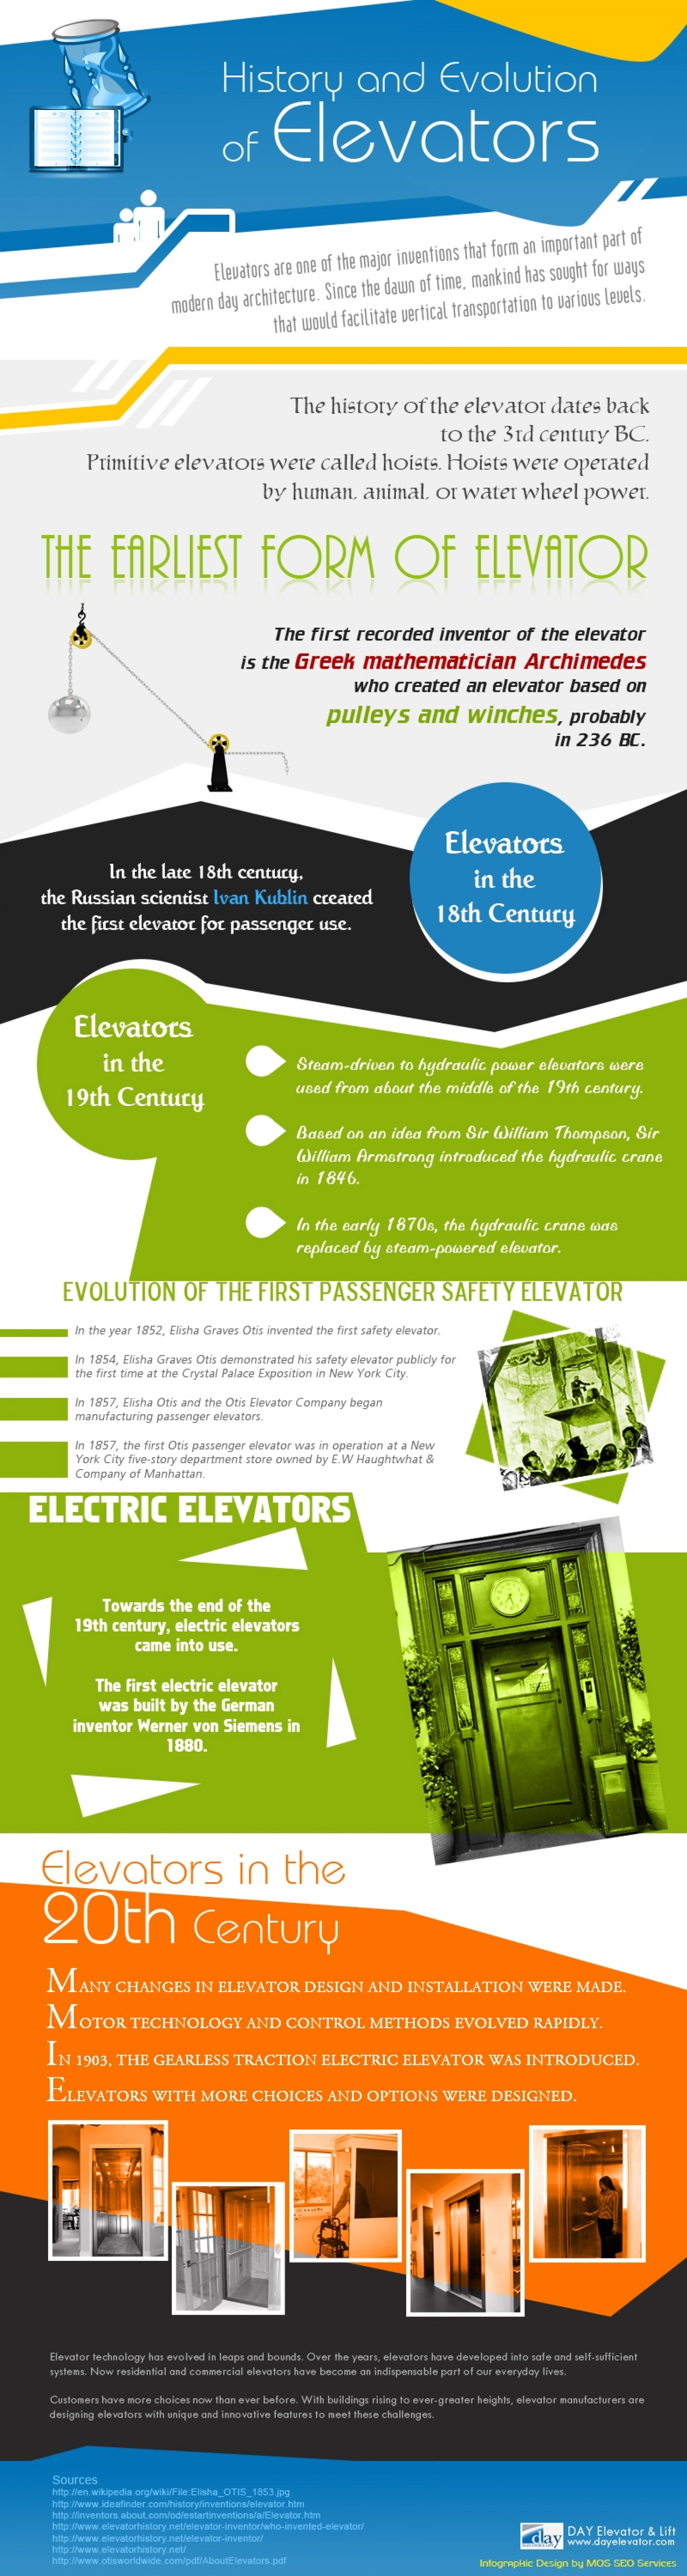 History and Evolution of Elevators Infographic